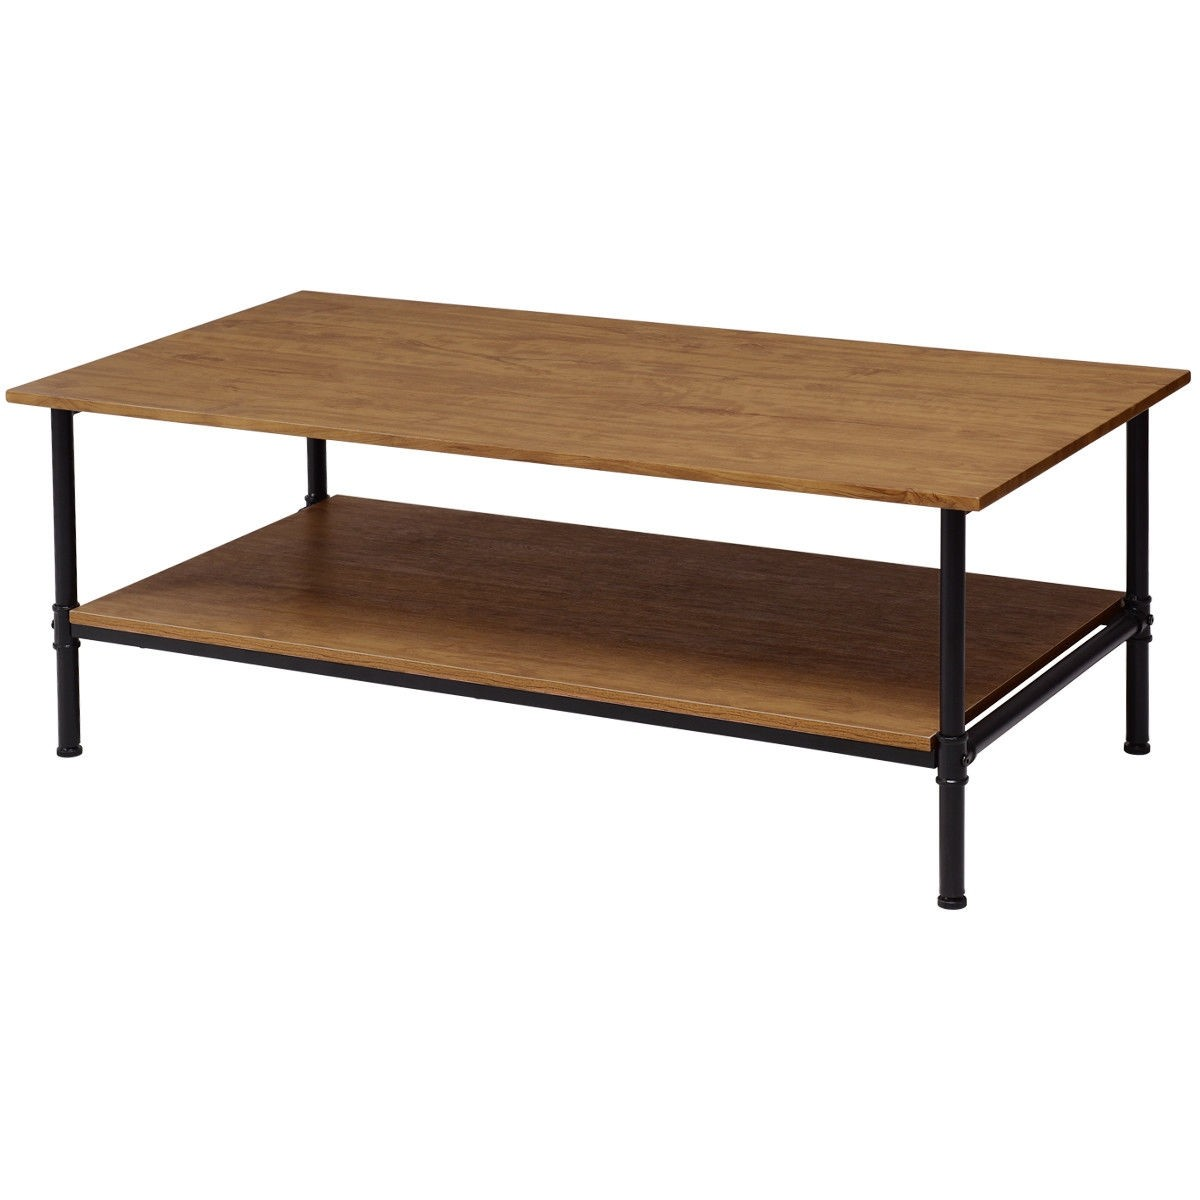 Rectangle Metal Frame Cocktail Coffee Table with Storage Shelf - By Choice Products